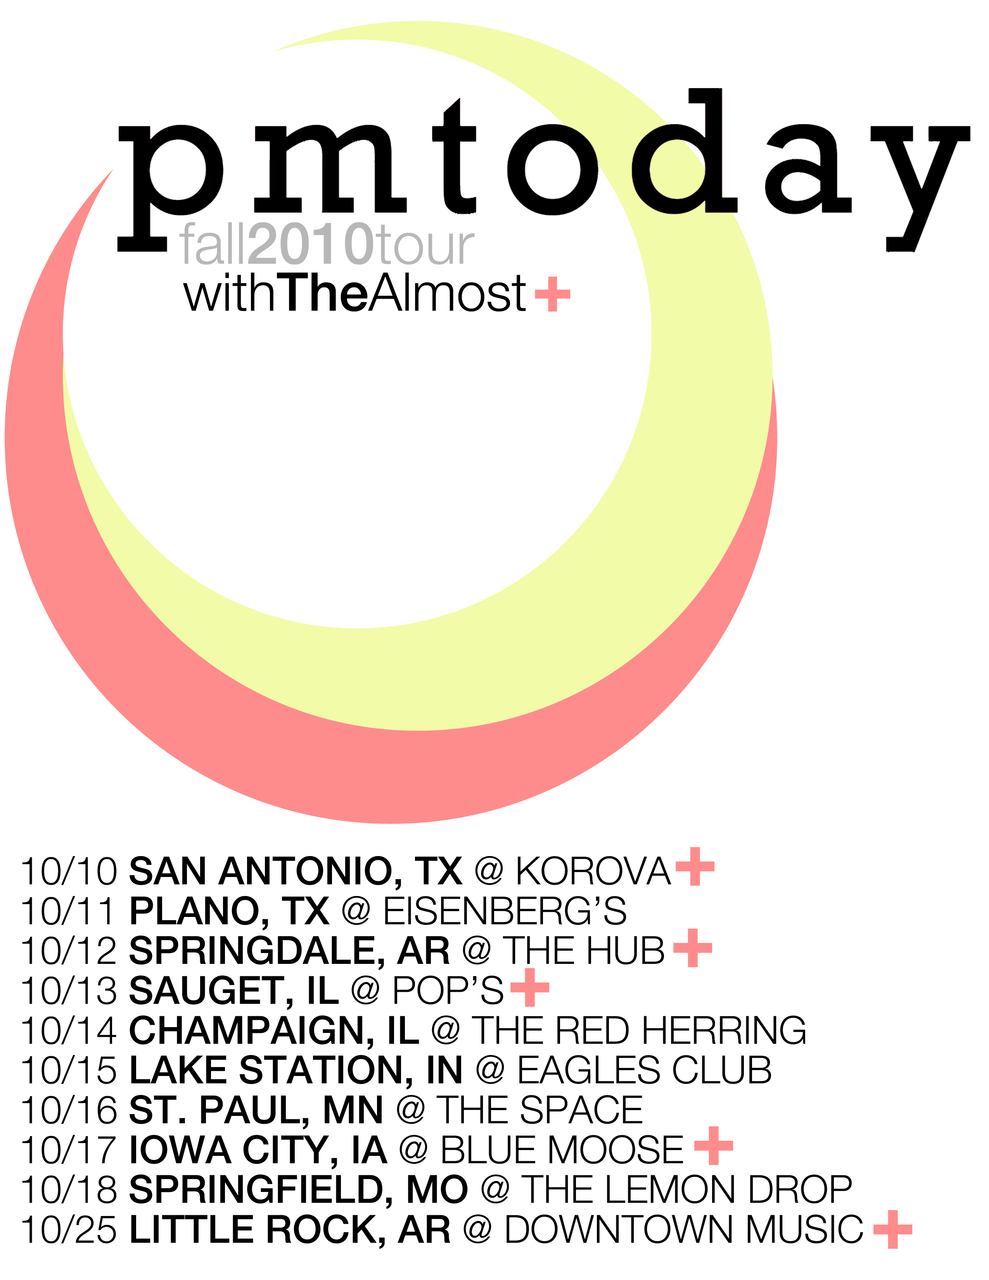 PMTODAY  starts tour with The Almost today!     10/10 - SAN ANTONIO, TX @ Korova  w/ The Almost  10/11 - PLANO, TX @ Eisenberg's 10/12 - SPRINGDALE, AR @ The Hub  w/ The Almost  10/13 - SAUGET, IL @ Pop's  w/ The Almost  10/14 - CHAMPAIGN, IL @ The Red Herring 10/15 - LAKE STATION, IN @ Eagles Club 10/16 - ST. PAUL, MN @ The Space 10/17 - IOWA CITY, IA @ Blue Moose  w/ The Almost  10/18 - SPRINGFIELD, MO @ The Lemon Drop 10/25 - LITTLE ROCK, AR @ Downtown Music  w/ The Almost